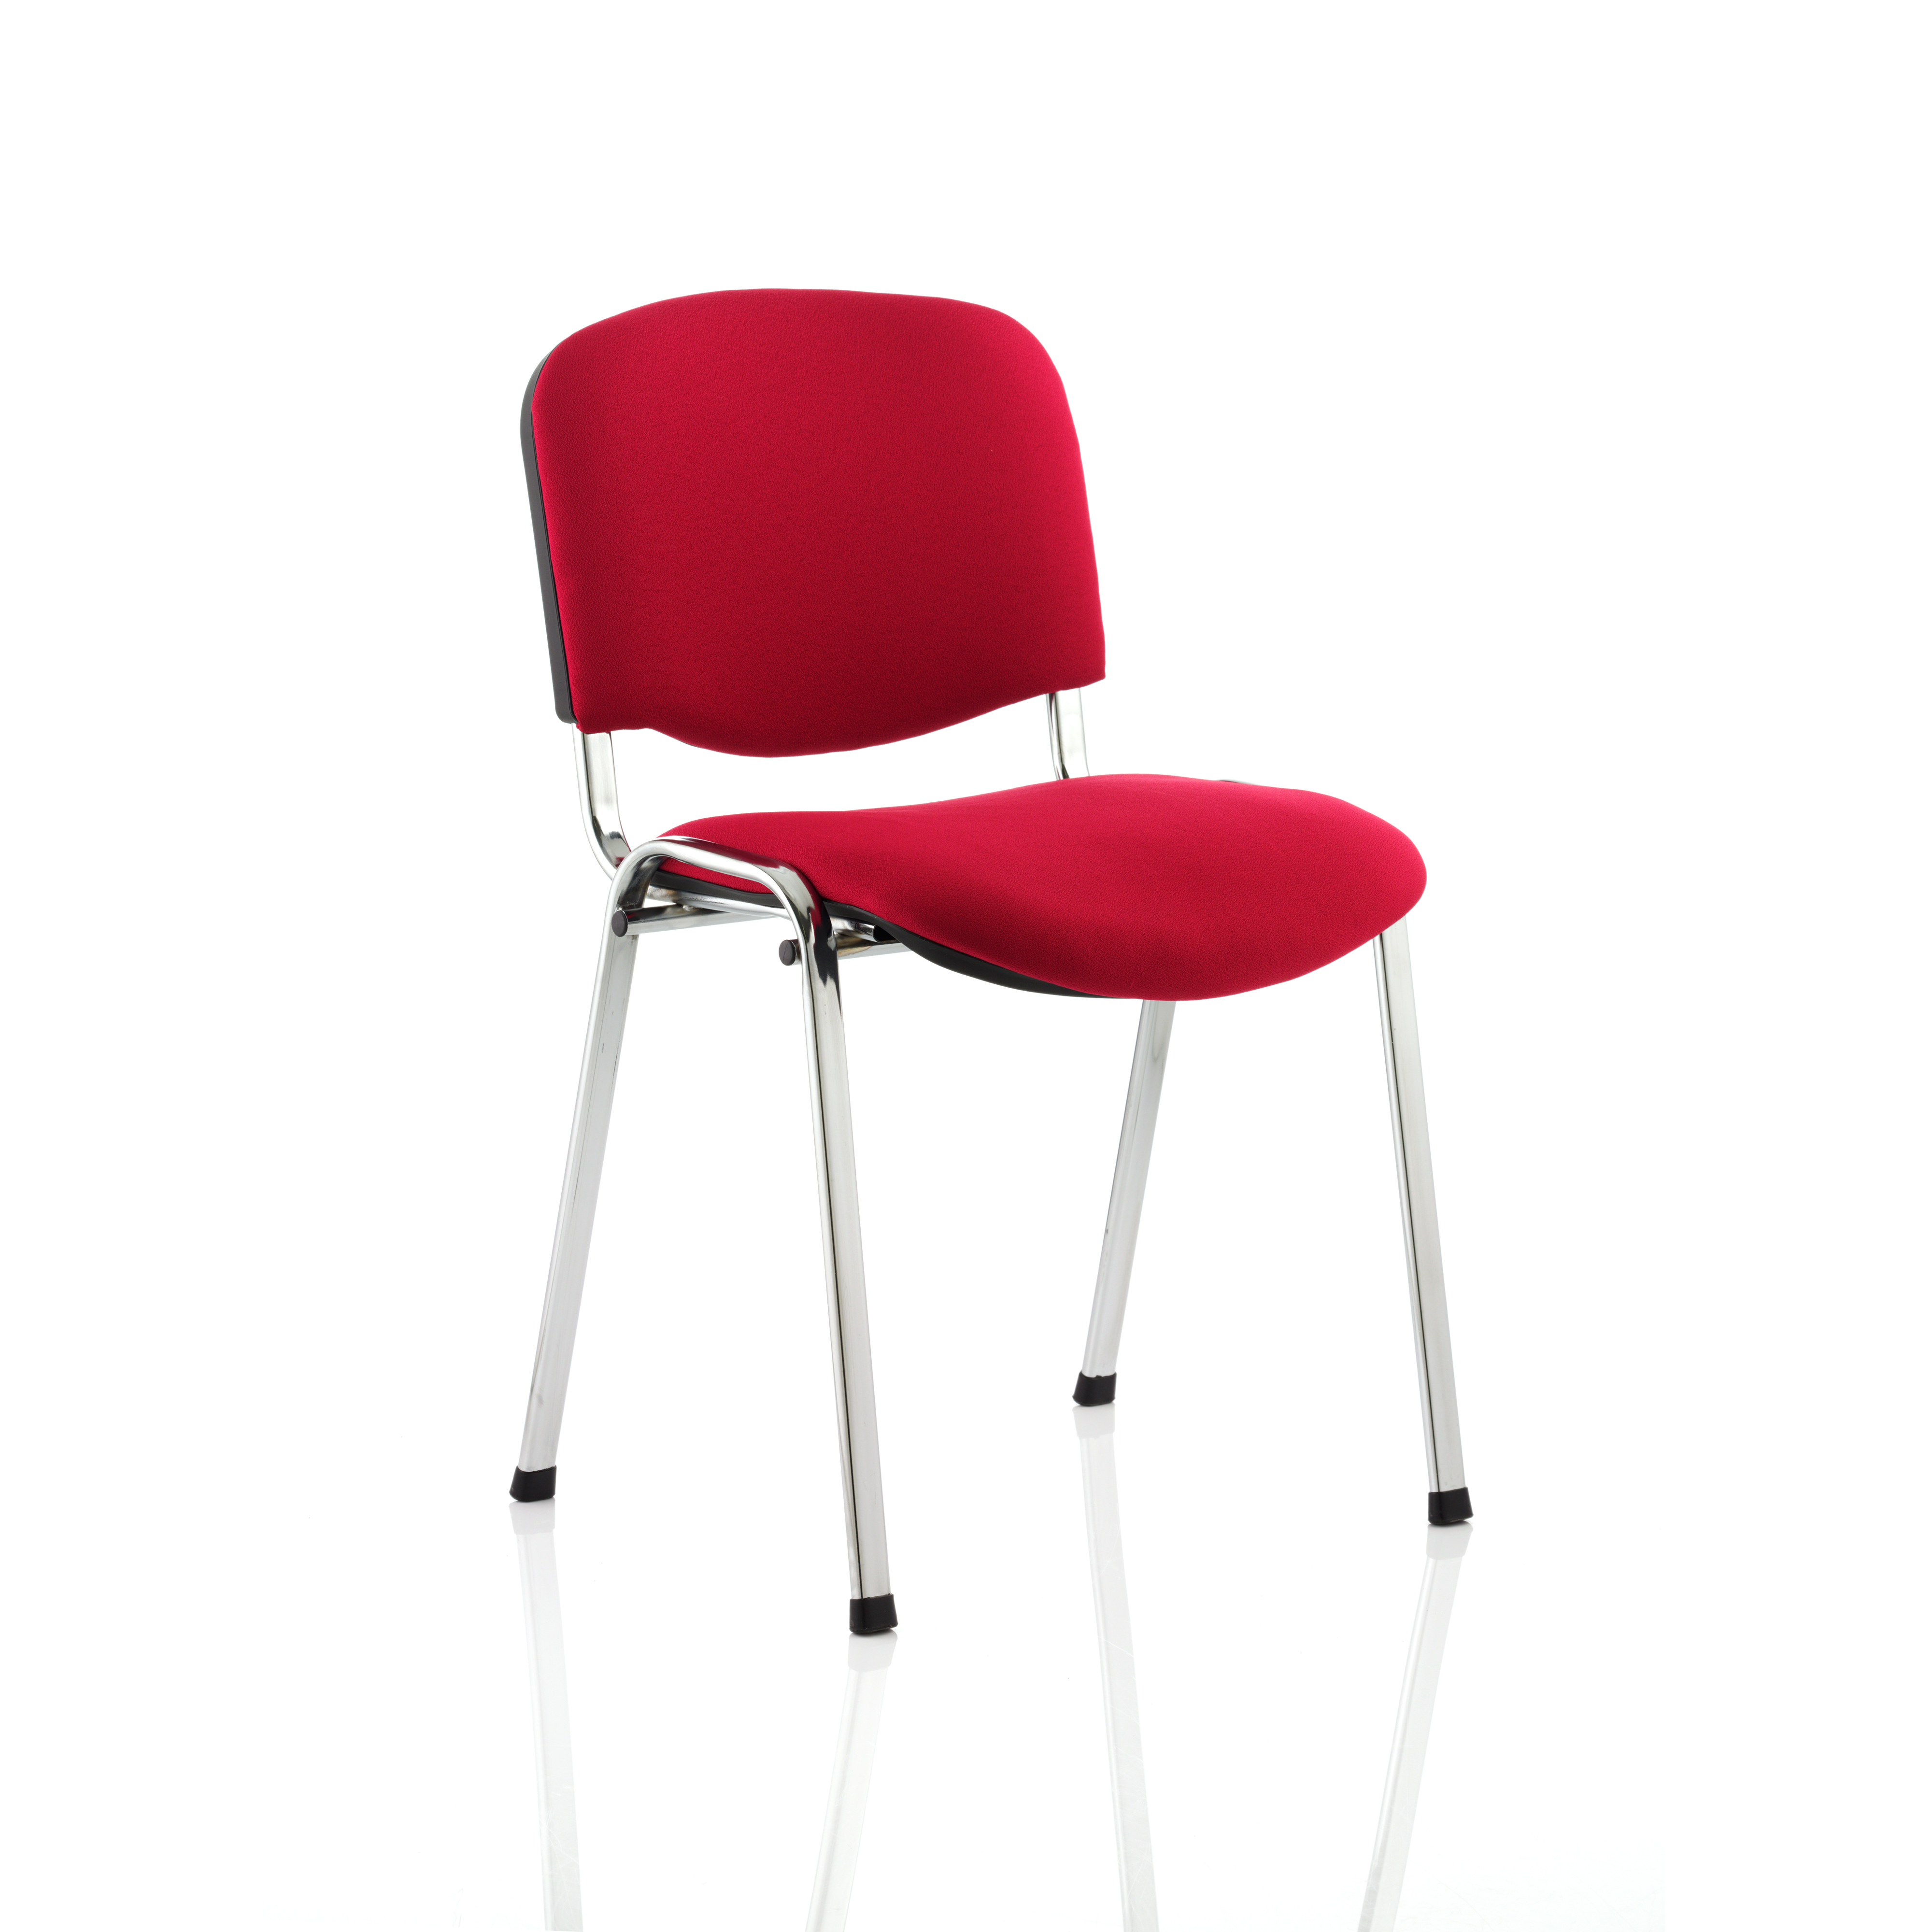 Tobago Stacking Chair Brown Chrome: Trexus Stacking Chair Chrome Frame Red 480x420x500mm Ref